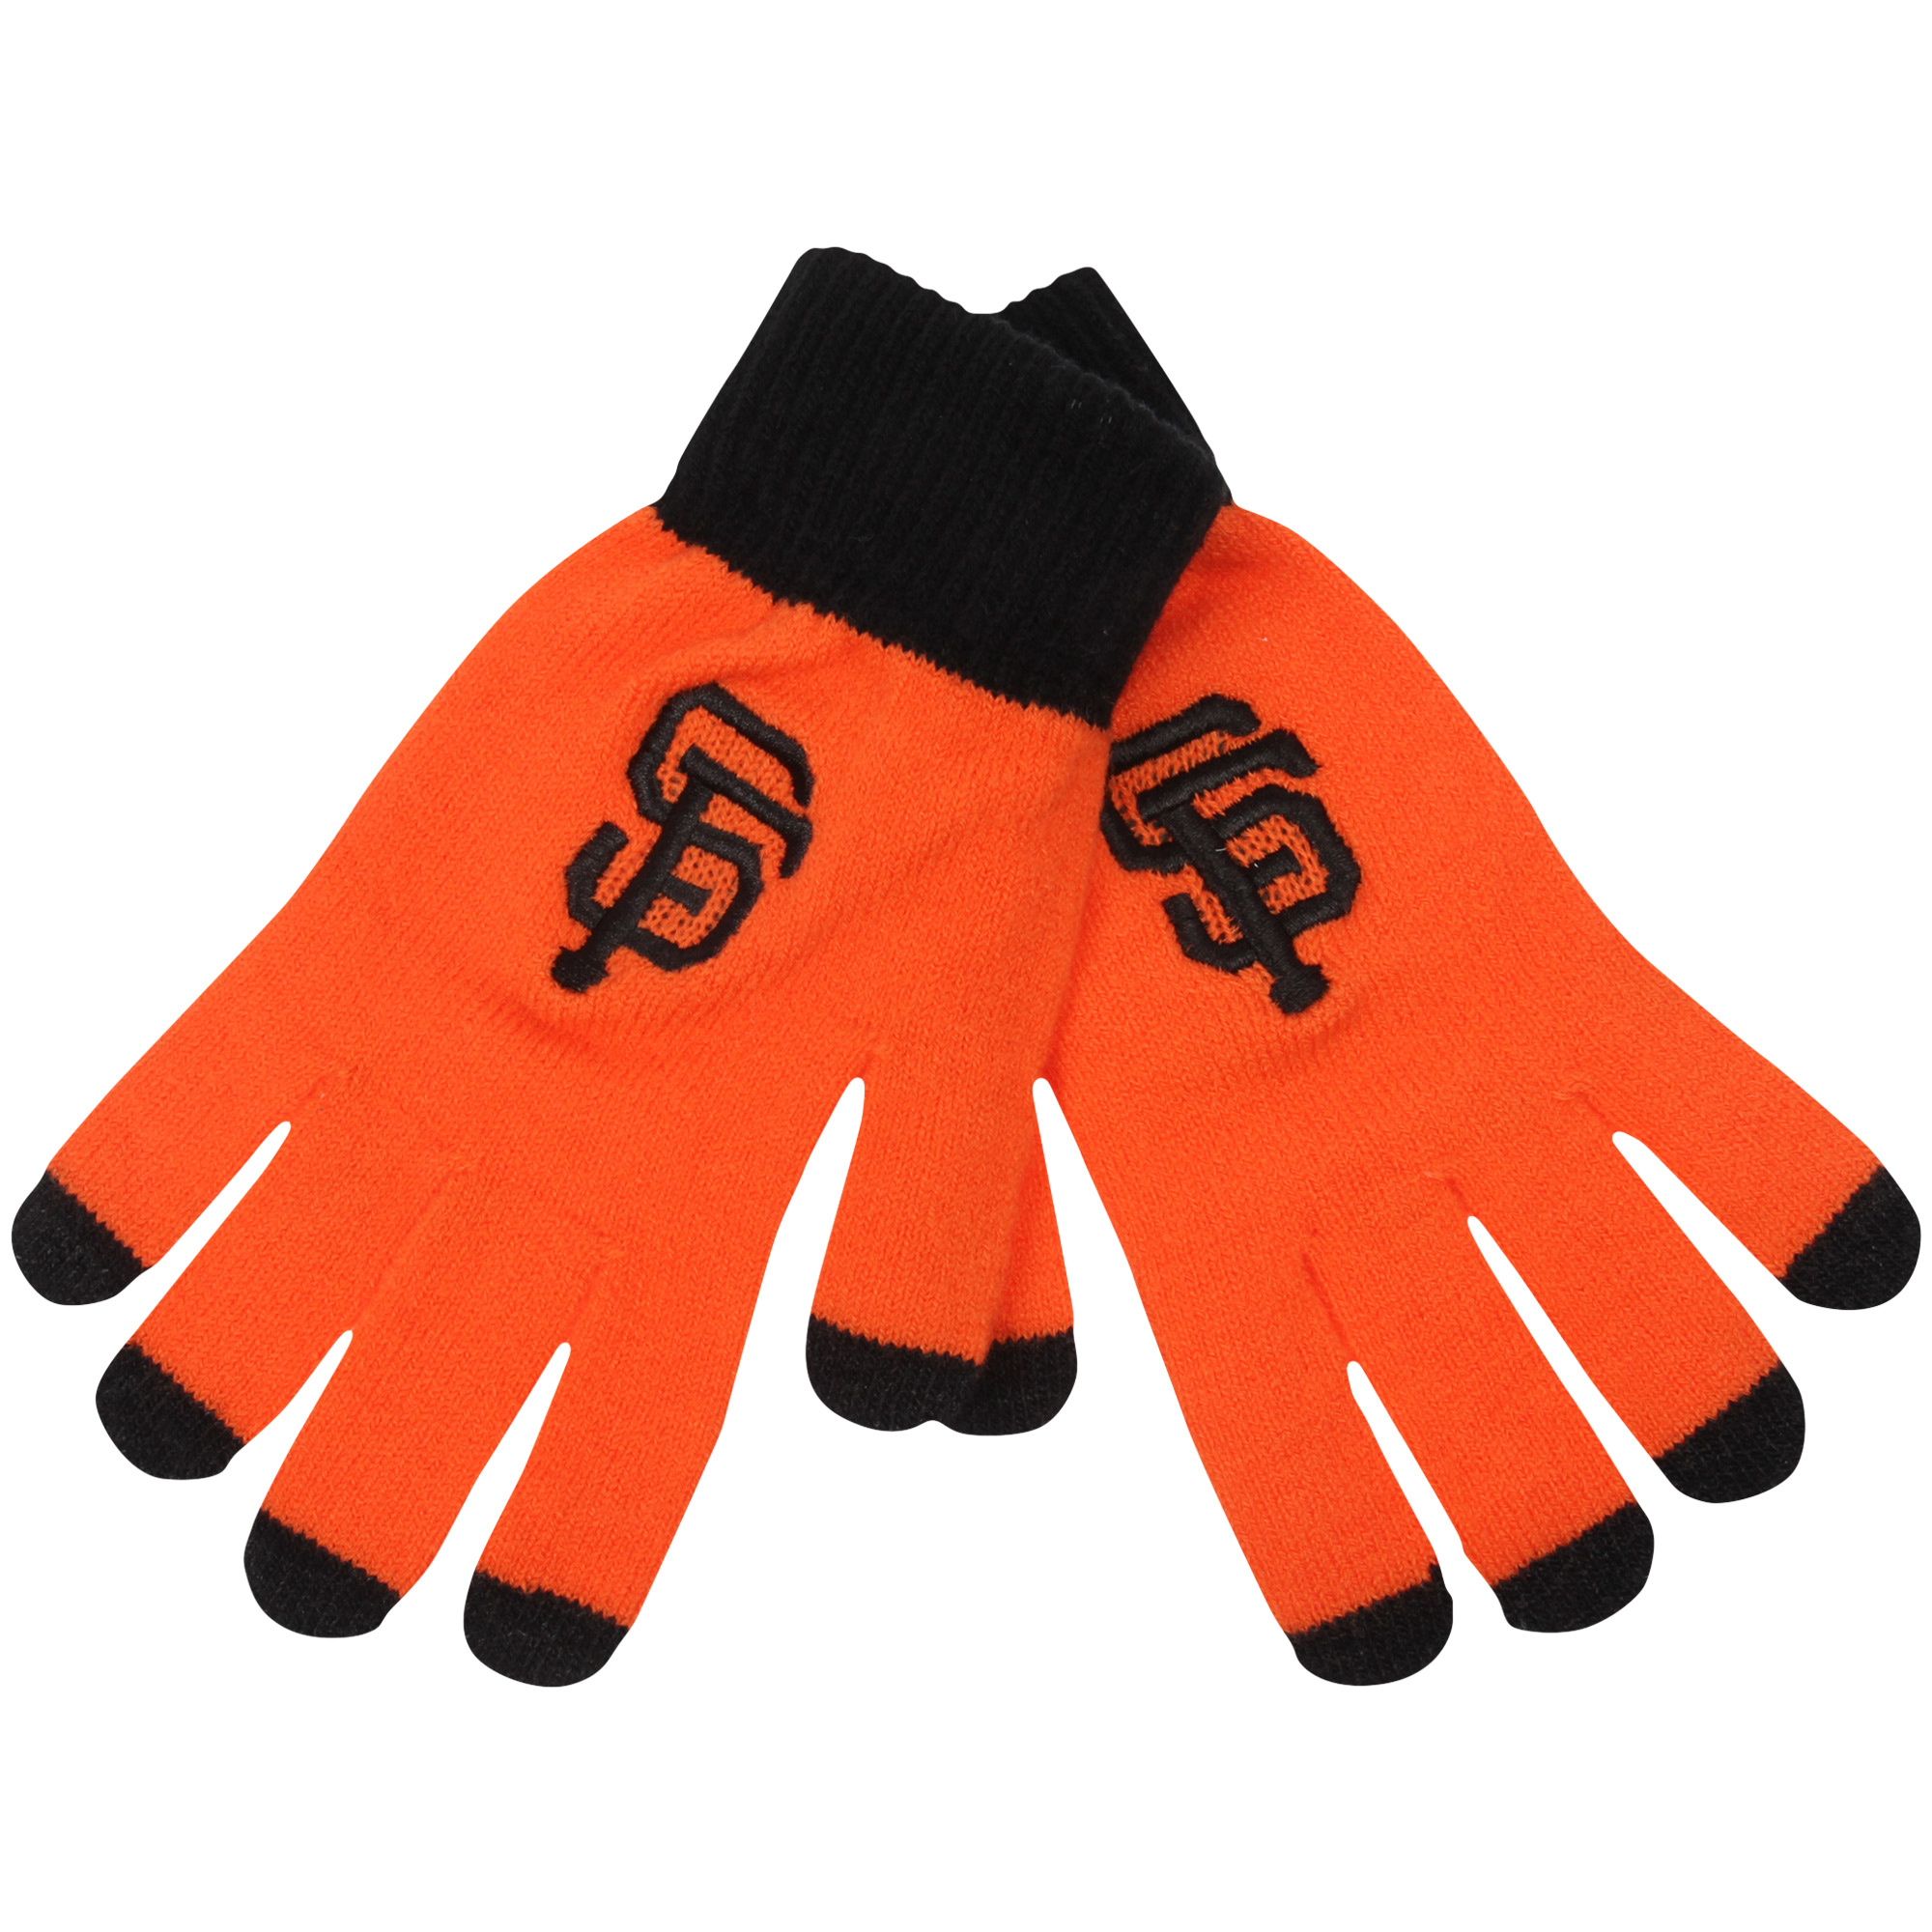 San Francisco Giants Official MLB Glove Solid Outdoor Winter Stretch Knit by Forever Collectibles 262190 by TEAM BEANS INC/FOREVER COLLECTIBLES